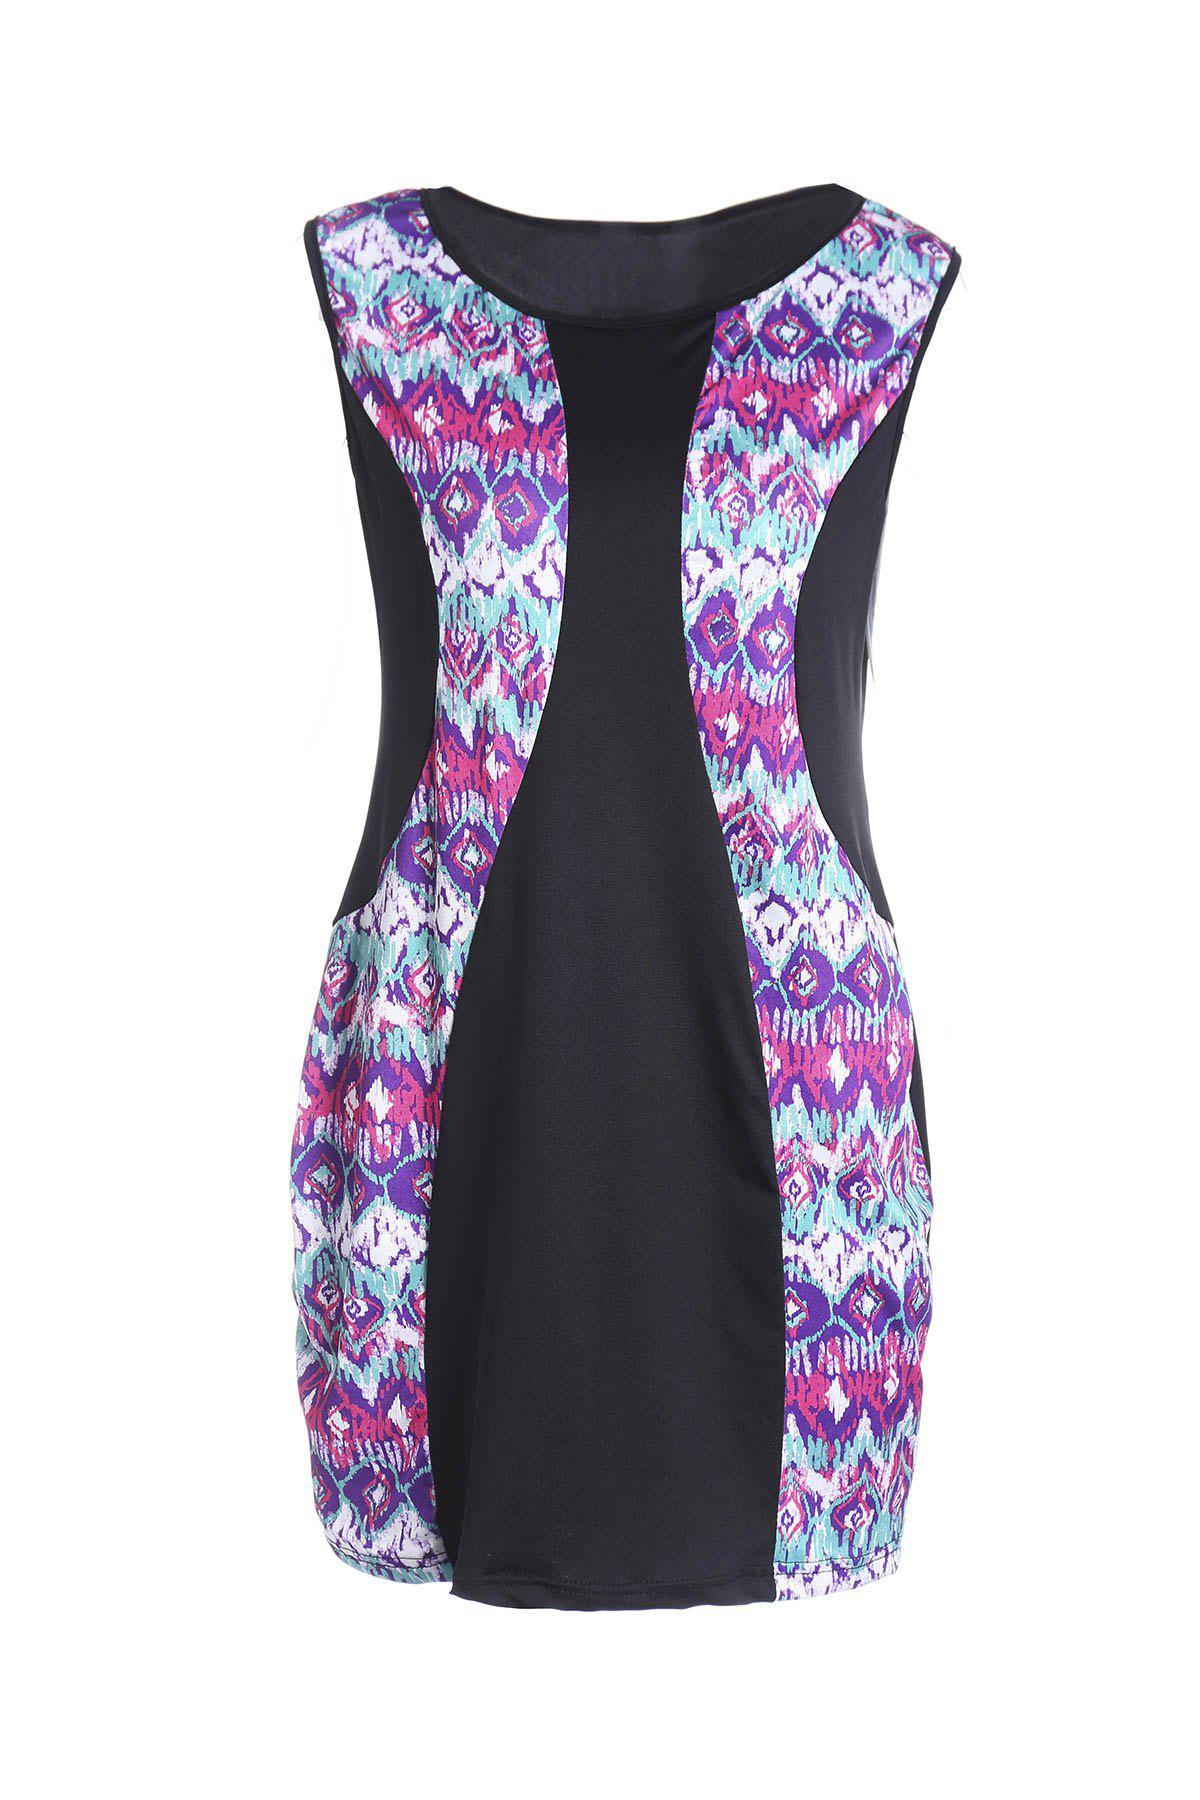 Ethnic Style Colorful Printed Jewel Neck Sleeveless Boydcon Dress For Women - COLORMIX 2XL